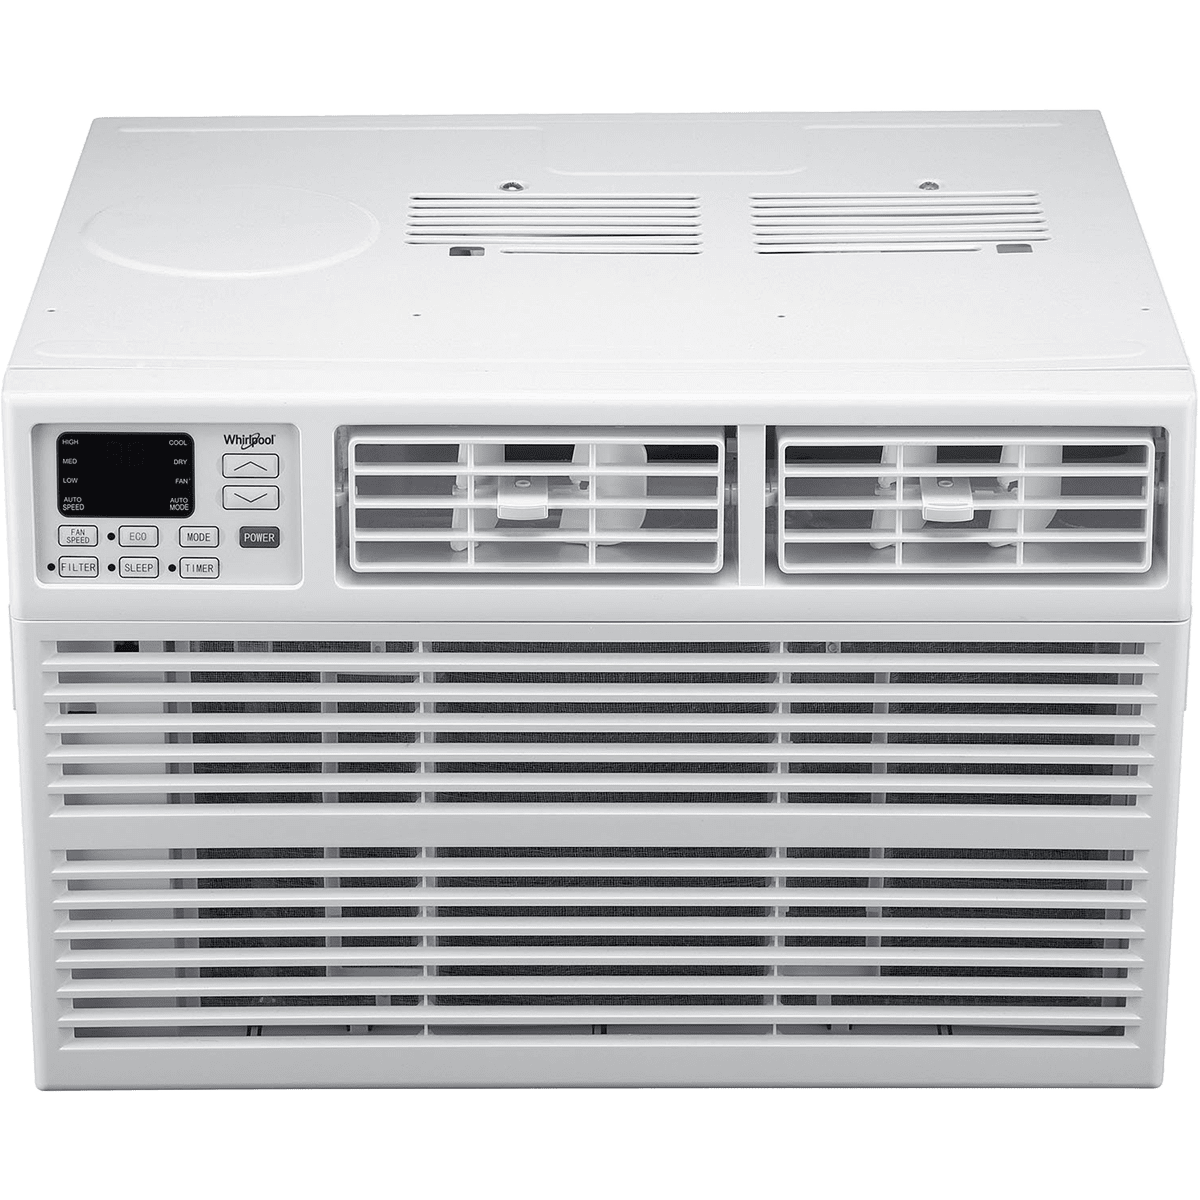 Whirlpool 15000 BTU Window Air Conditioner w/ Electronic Controls